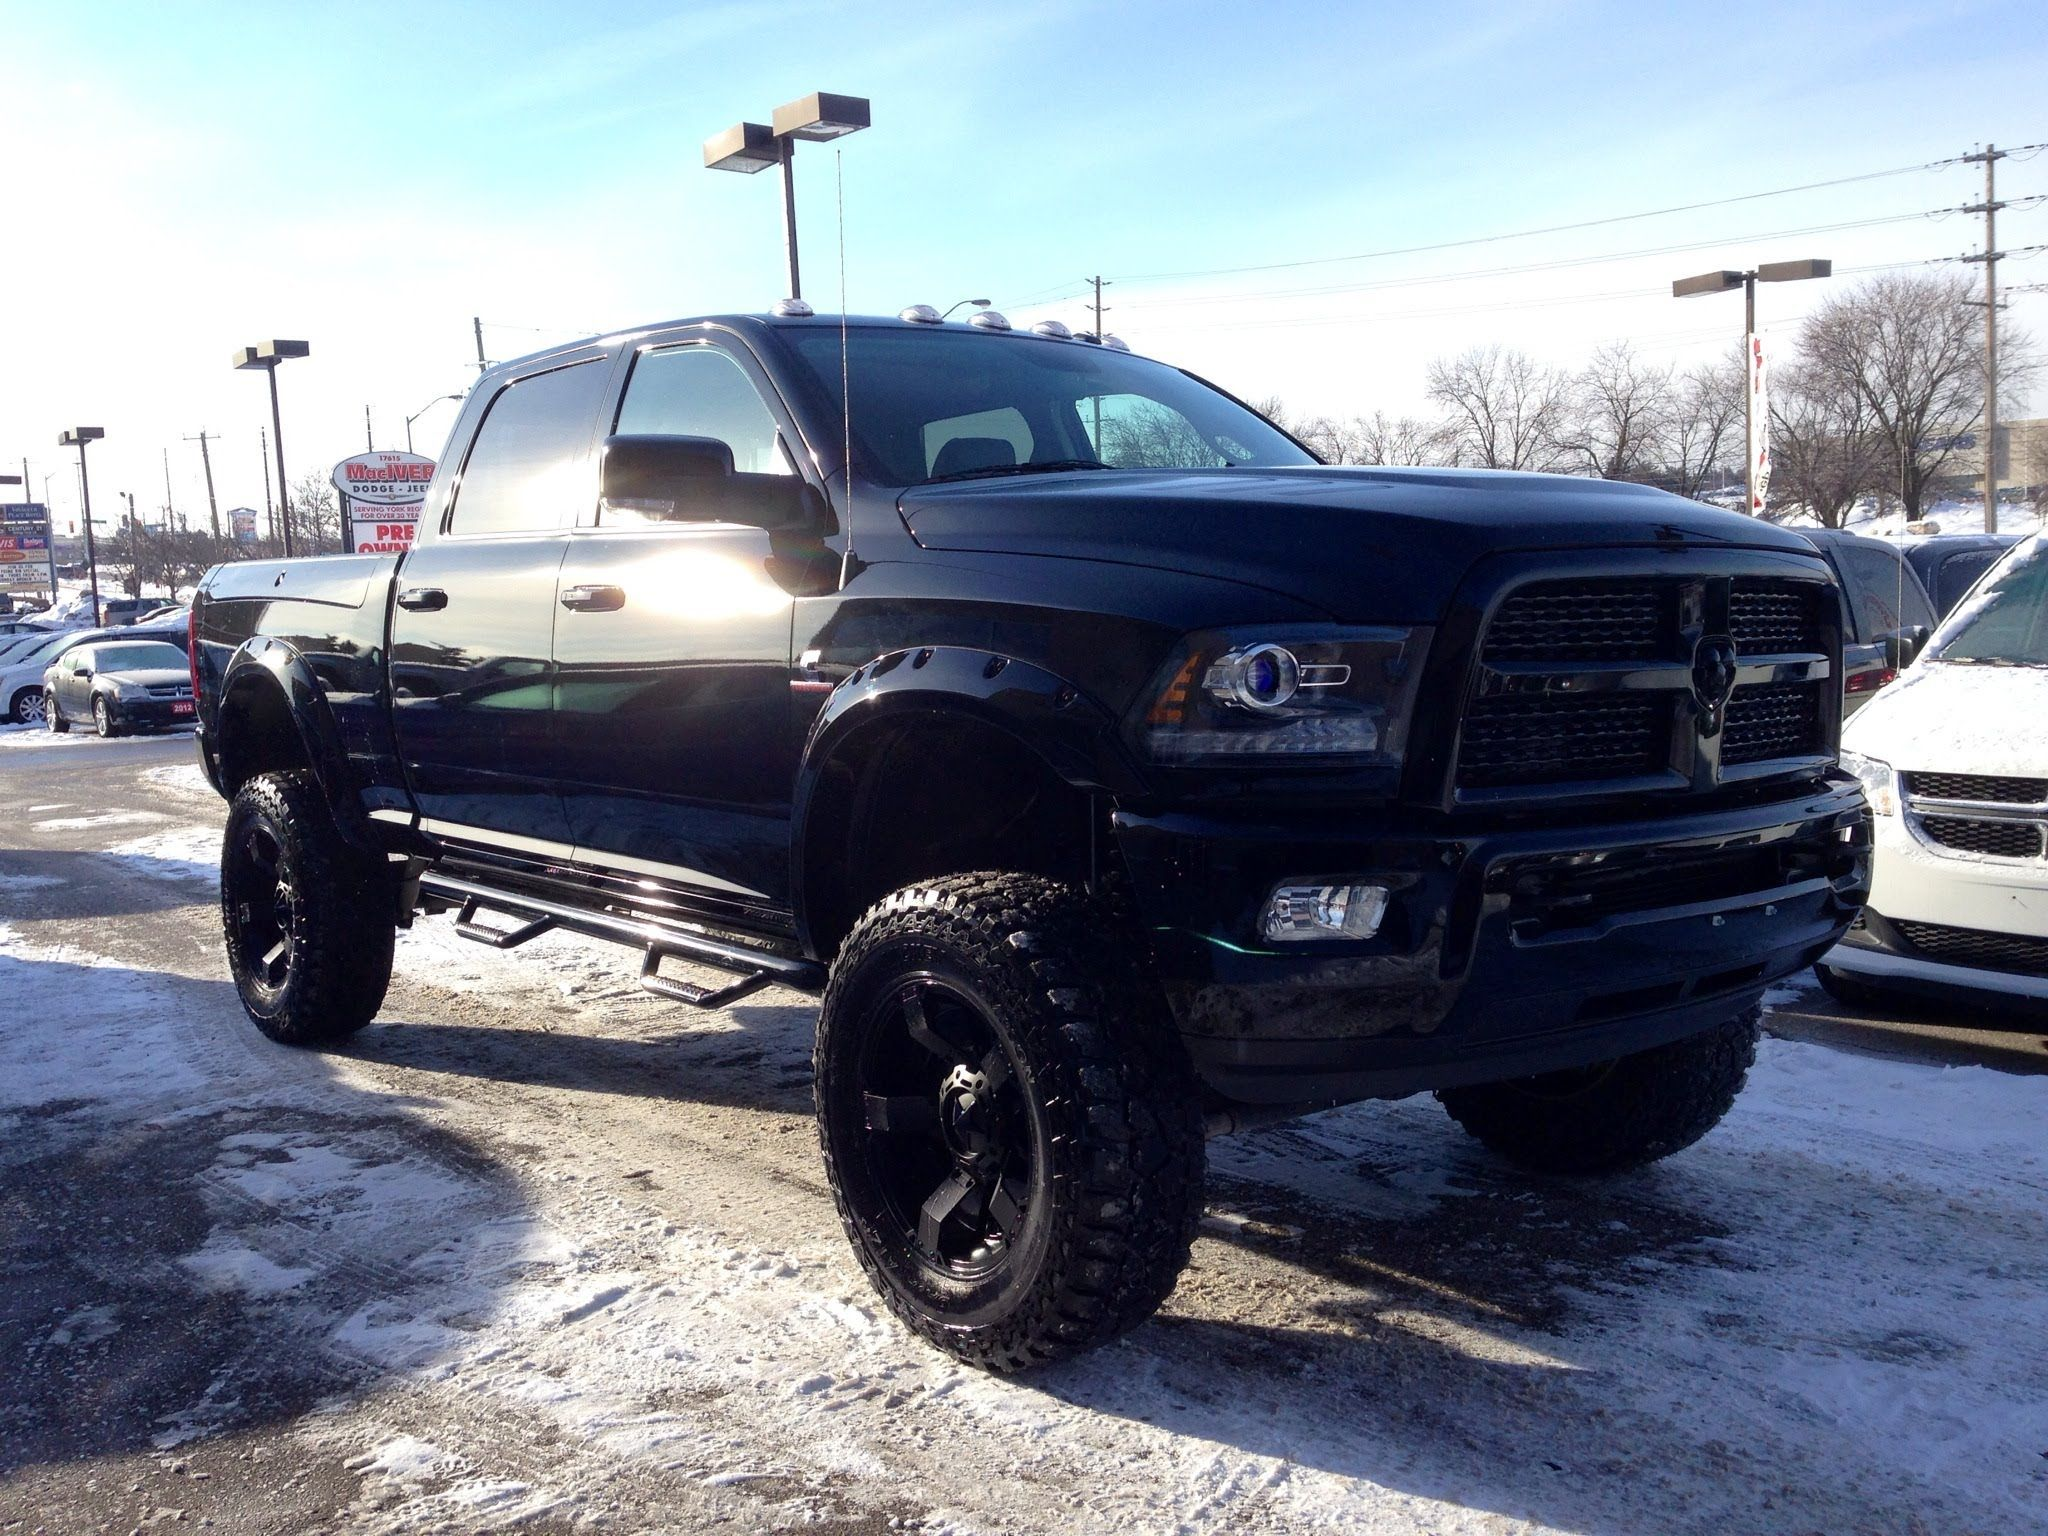 Lifted Dodge Ram Wallpaper Image 12 With Images Suv Trucks